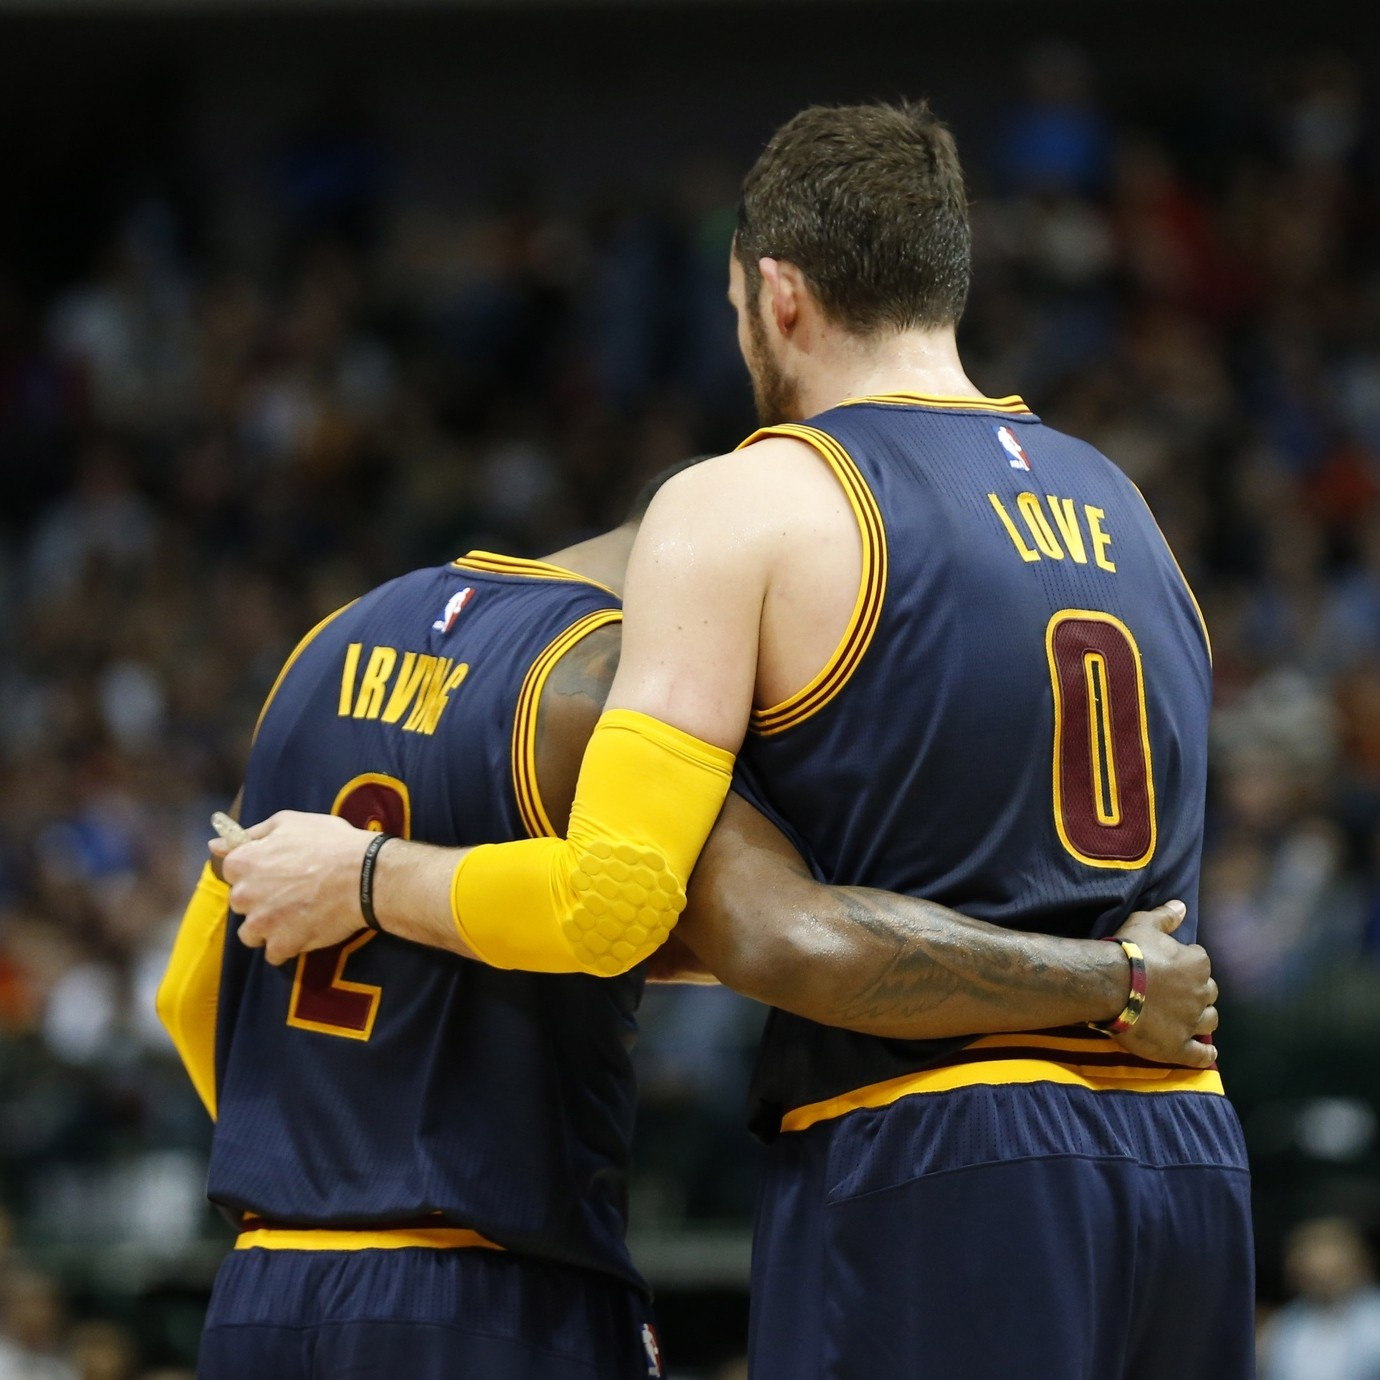 Kevin-love-and-kyrie-irving-trades-that-could-get-cleveland-past-warriors-1465320152.jpg?crop=0